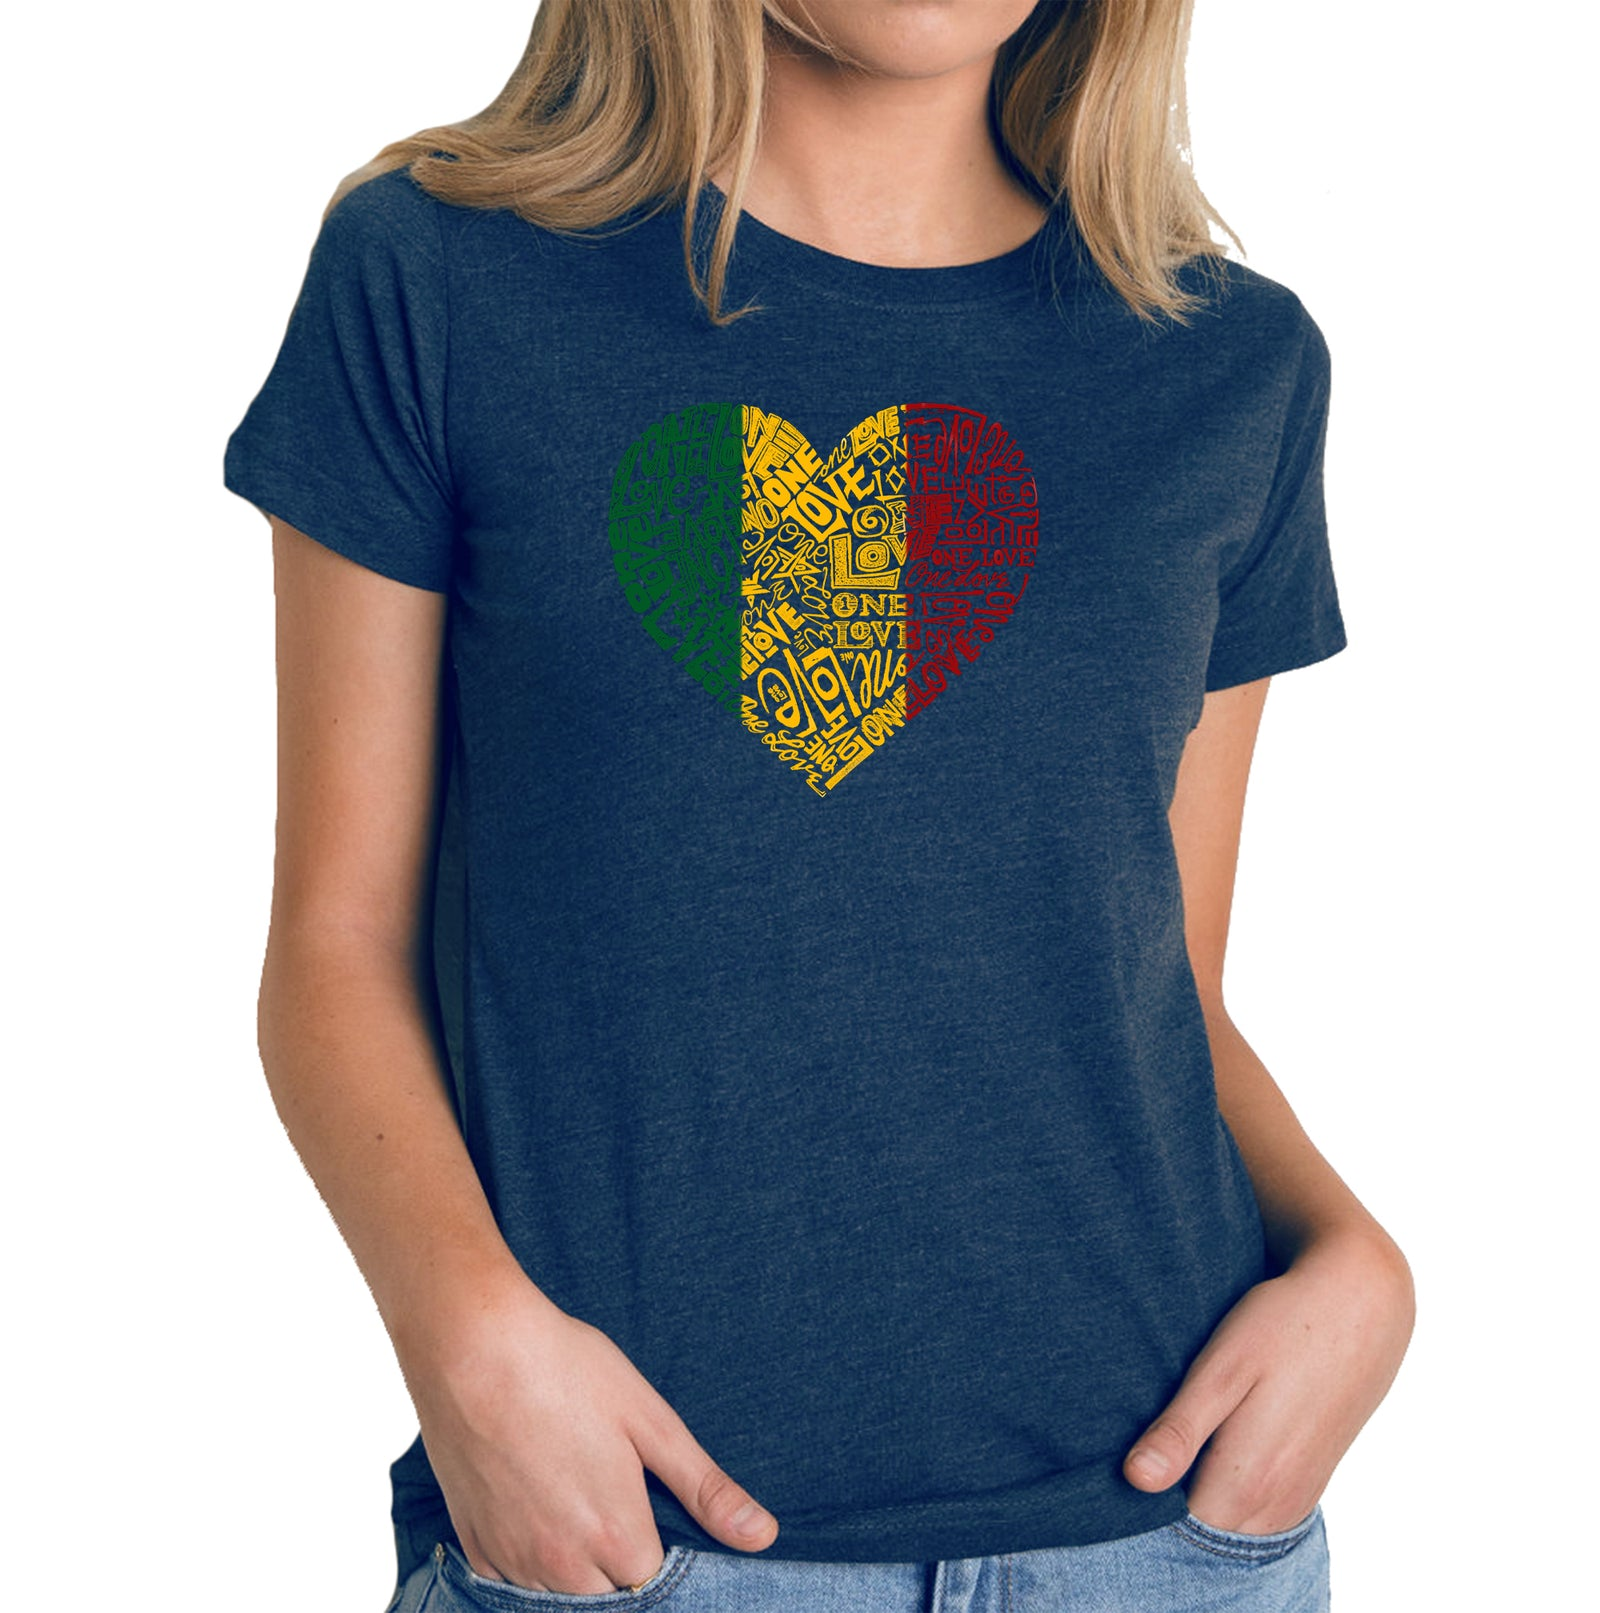 Women's Premium Blend Word Art T-shirt - One Love Heart